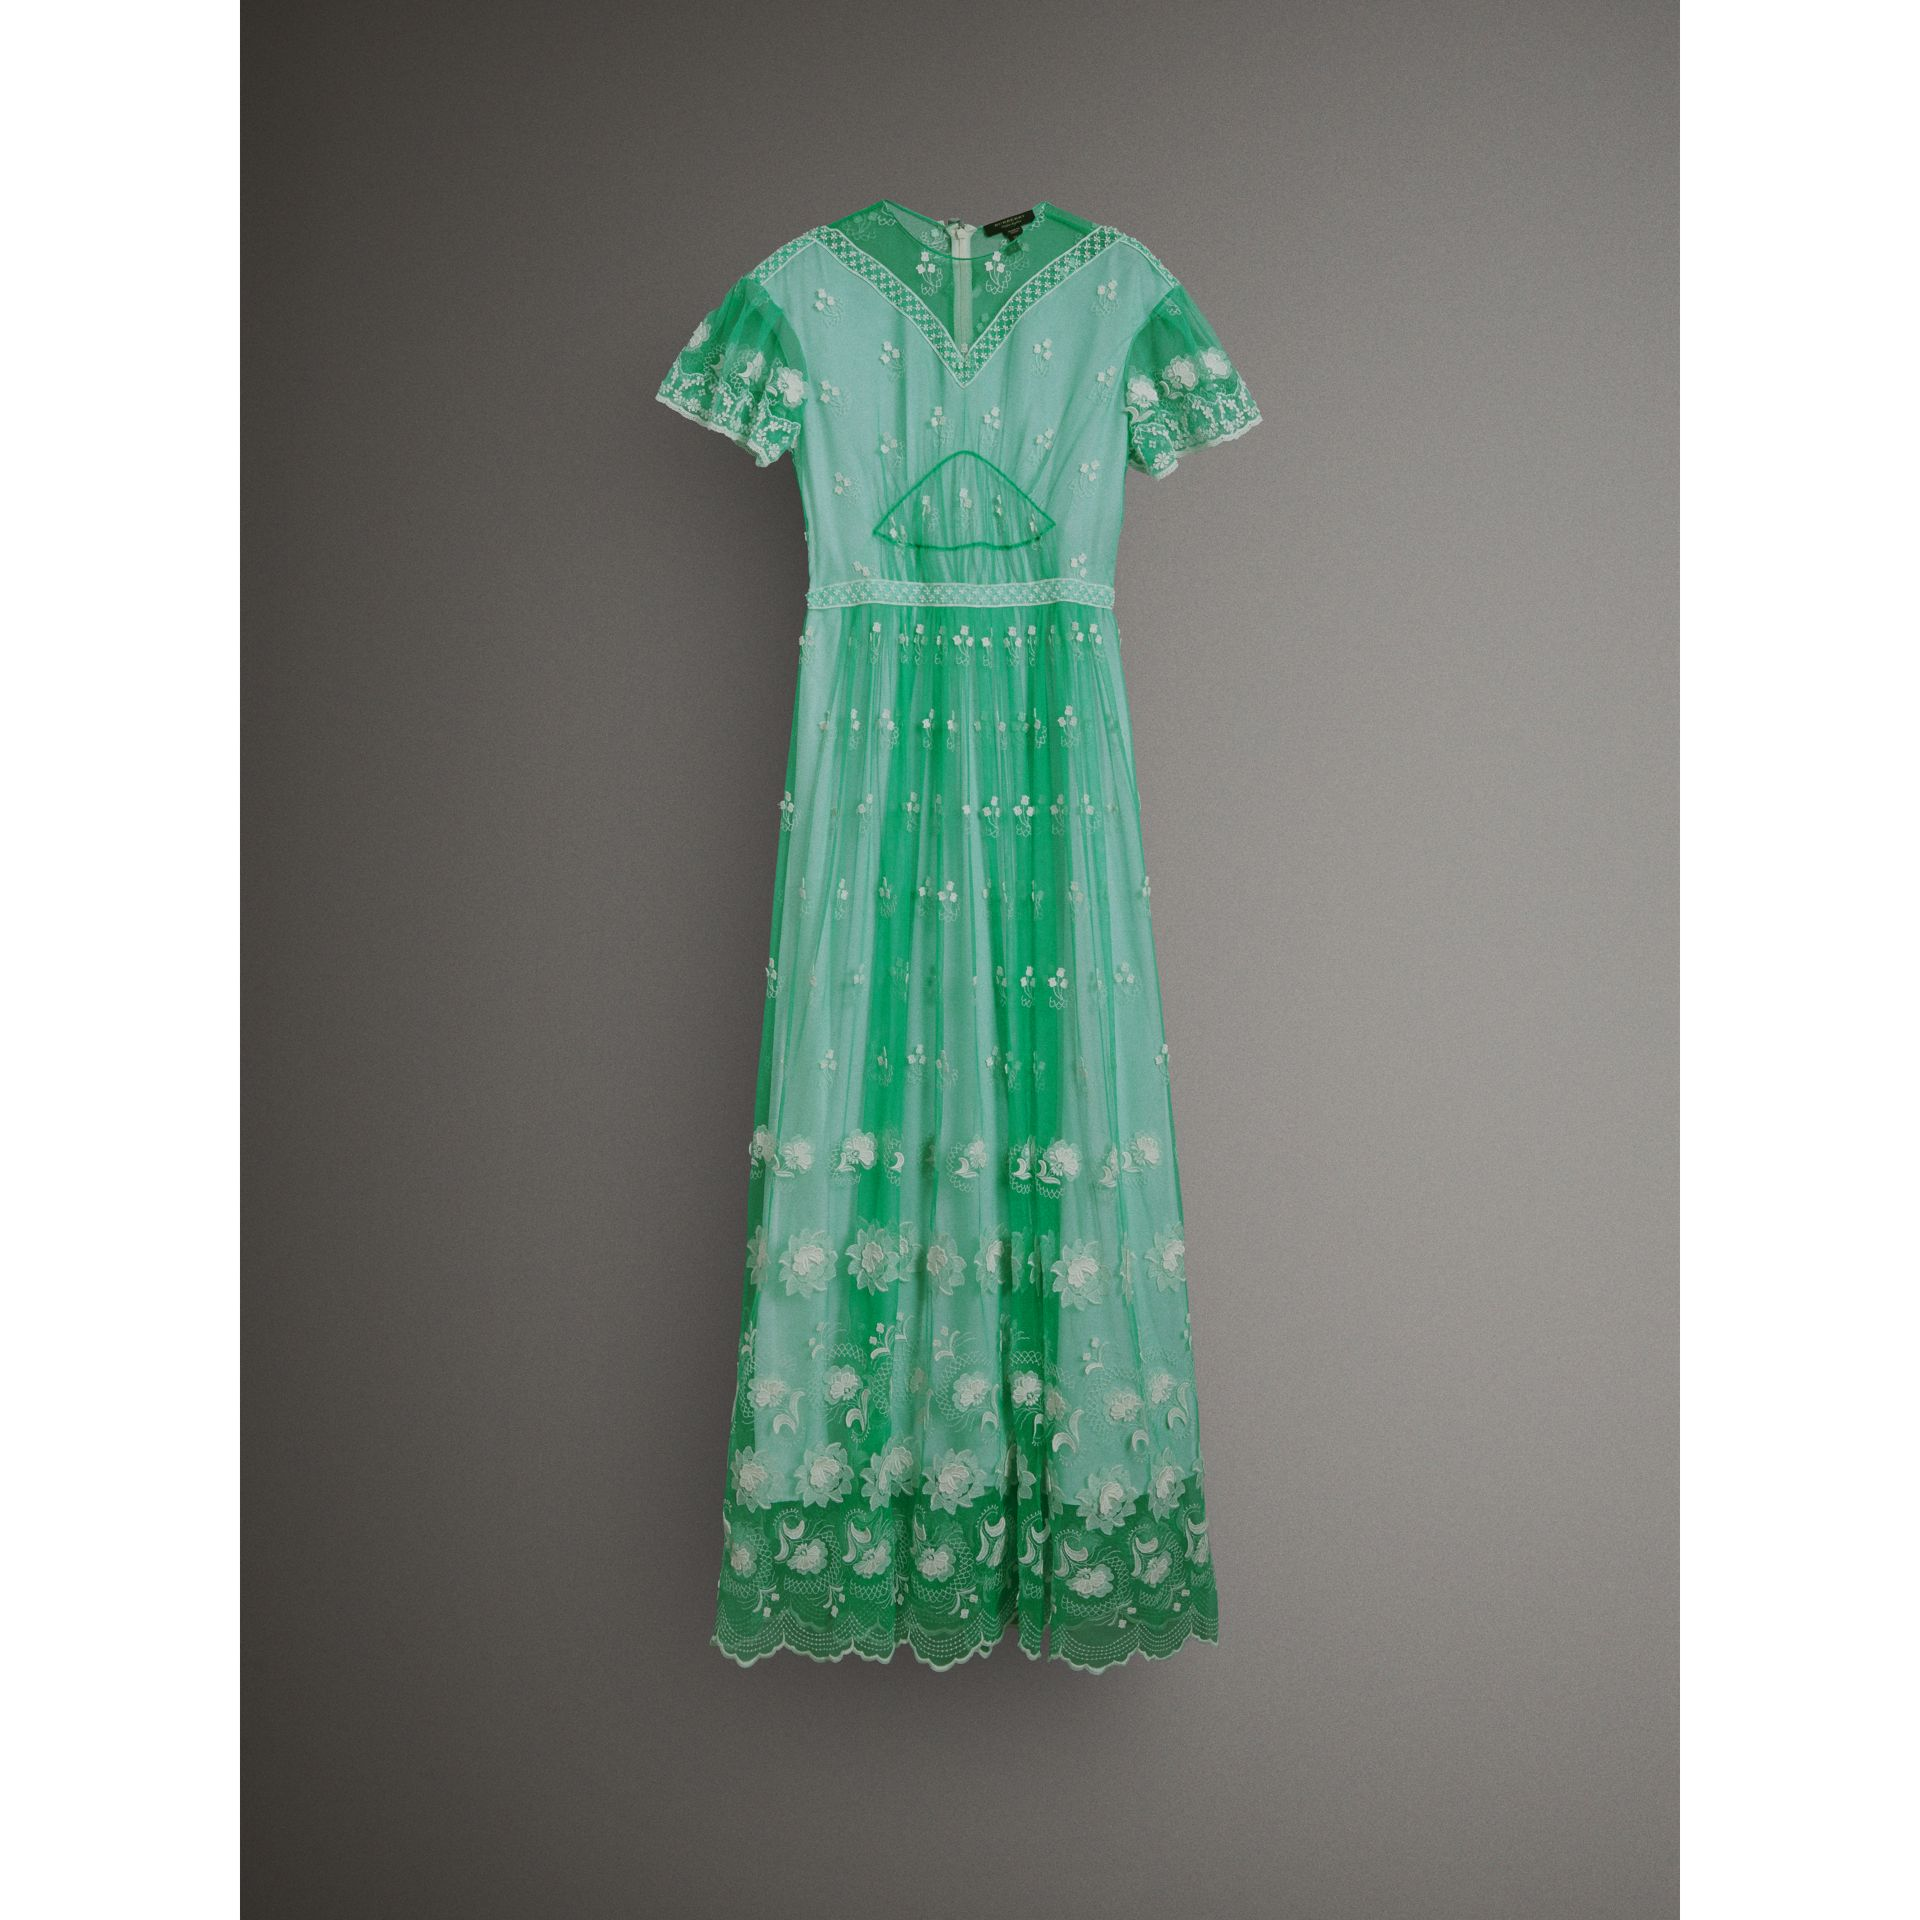 Embroidered Tulle Gathered Dress in Aqua Green/white - Women | Burberry - gallery image 4